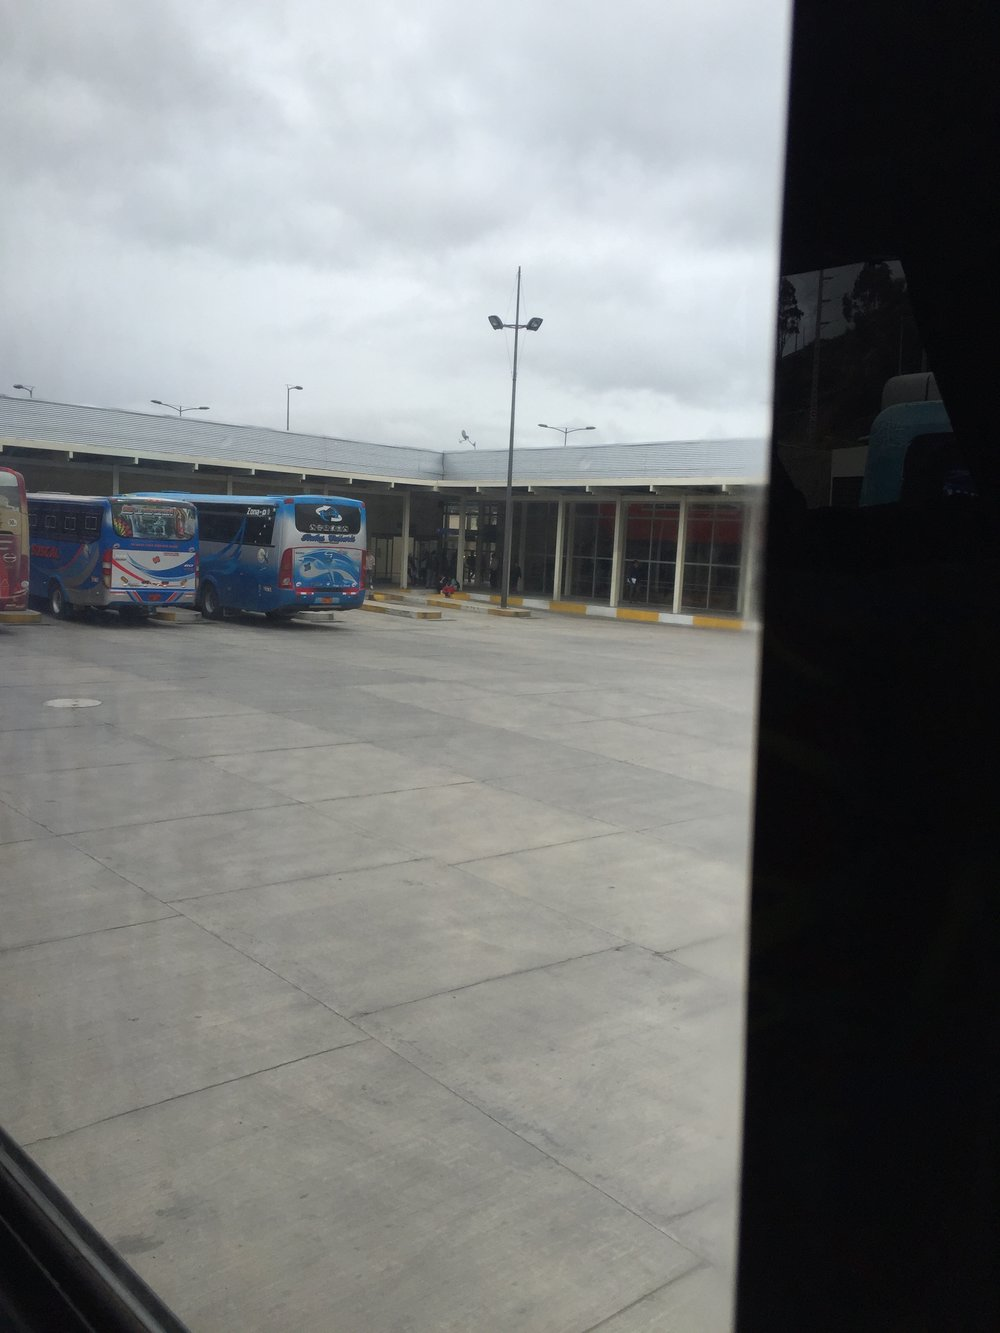 The Bus Station were I almost lost Frank